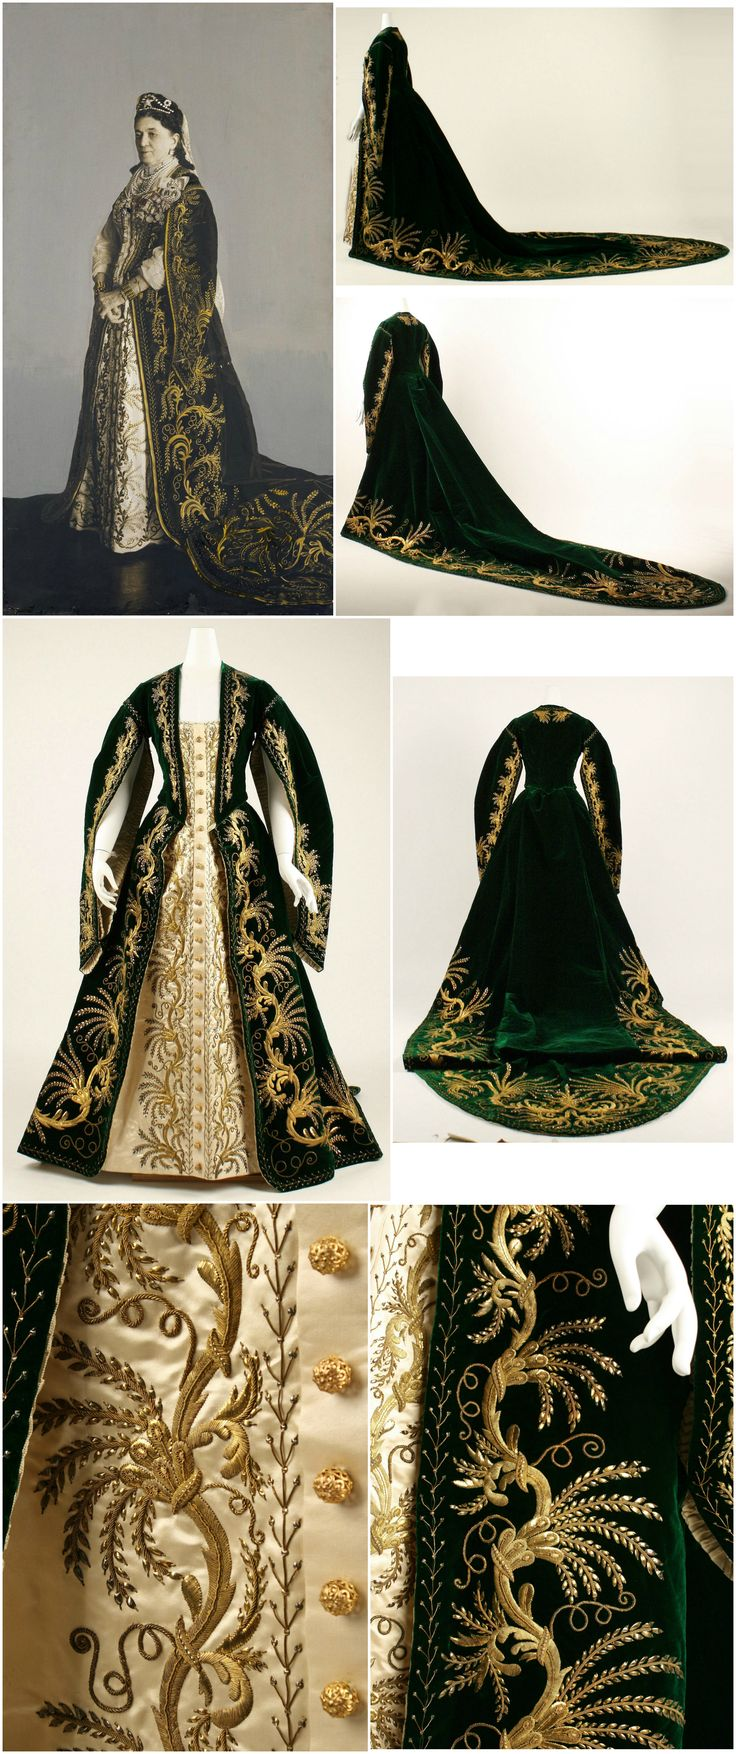 """Court robe, Russian, c. 1900. Silk, metallic threads and paillettes. The Metropolitan Museum of Art. Accompanying photo: """"Portrait of a Lady in a Court Uniform Dress,"""" Russia, 1900s. Silver-bromide print, with gouache, water-color and white lead. State Hermitage Museum. CLICK FOR LARGER IMAGES."""